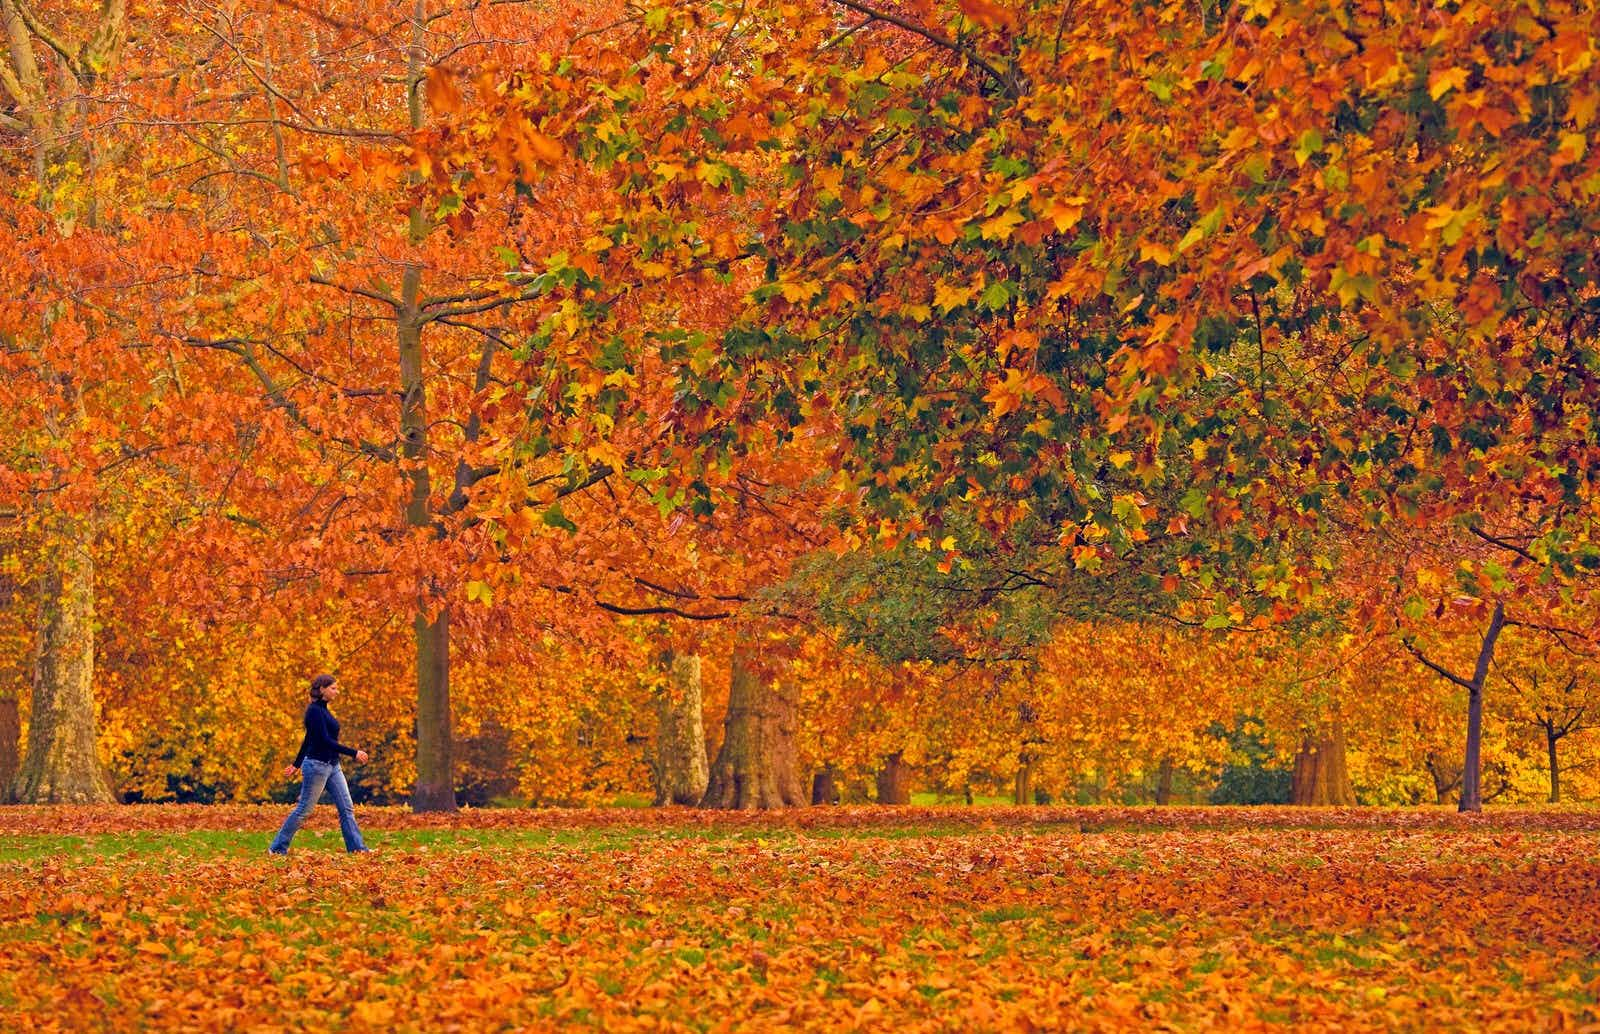 Fall colours, like here in Hyde Park, add a beauitiful backdrop to an autumn visit to London © Scott E Barbour / Getty Images